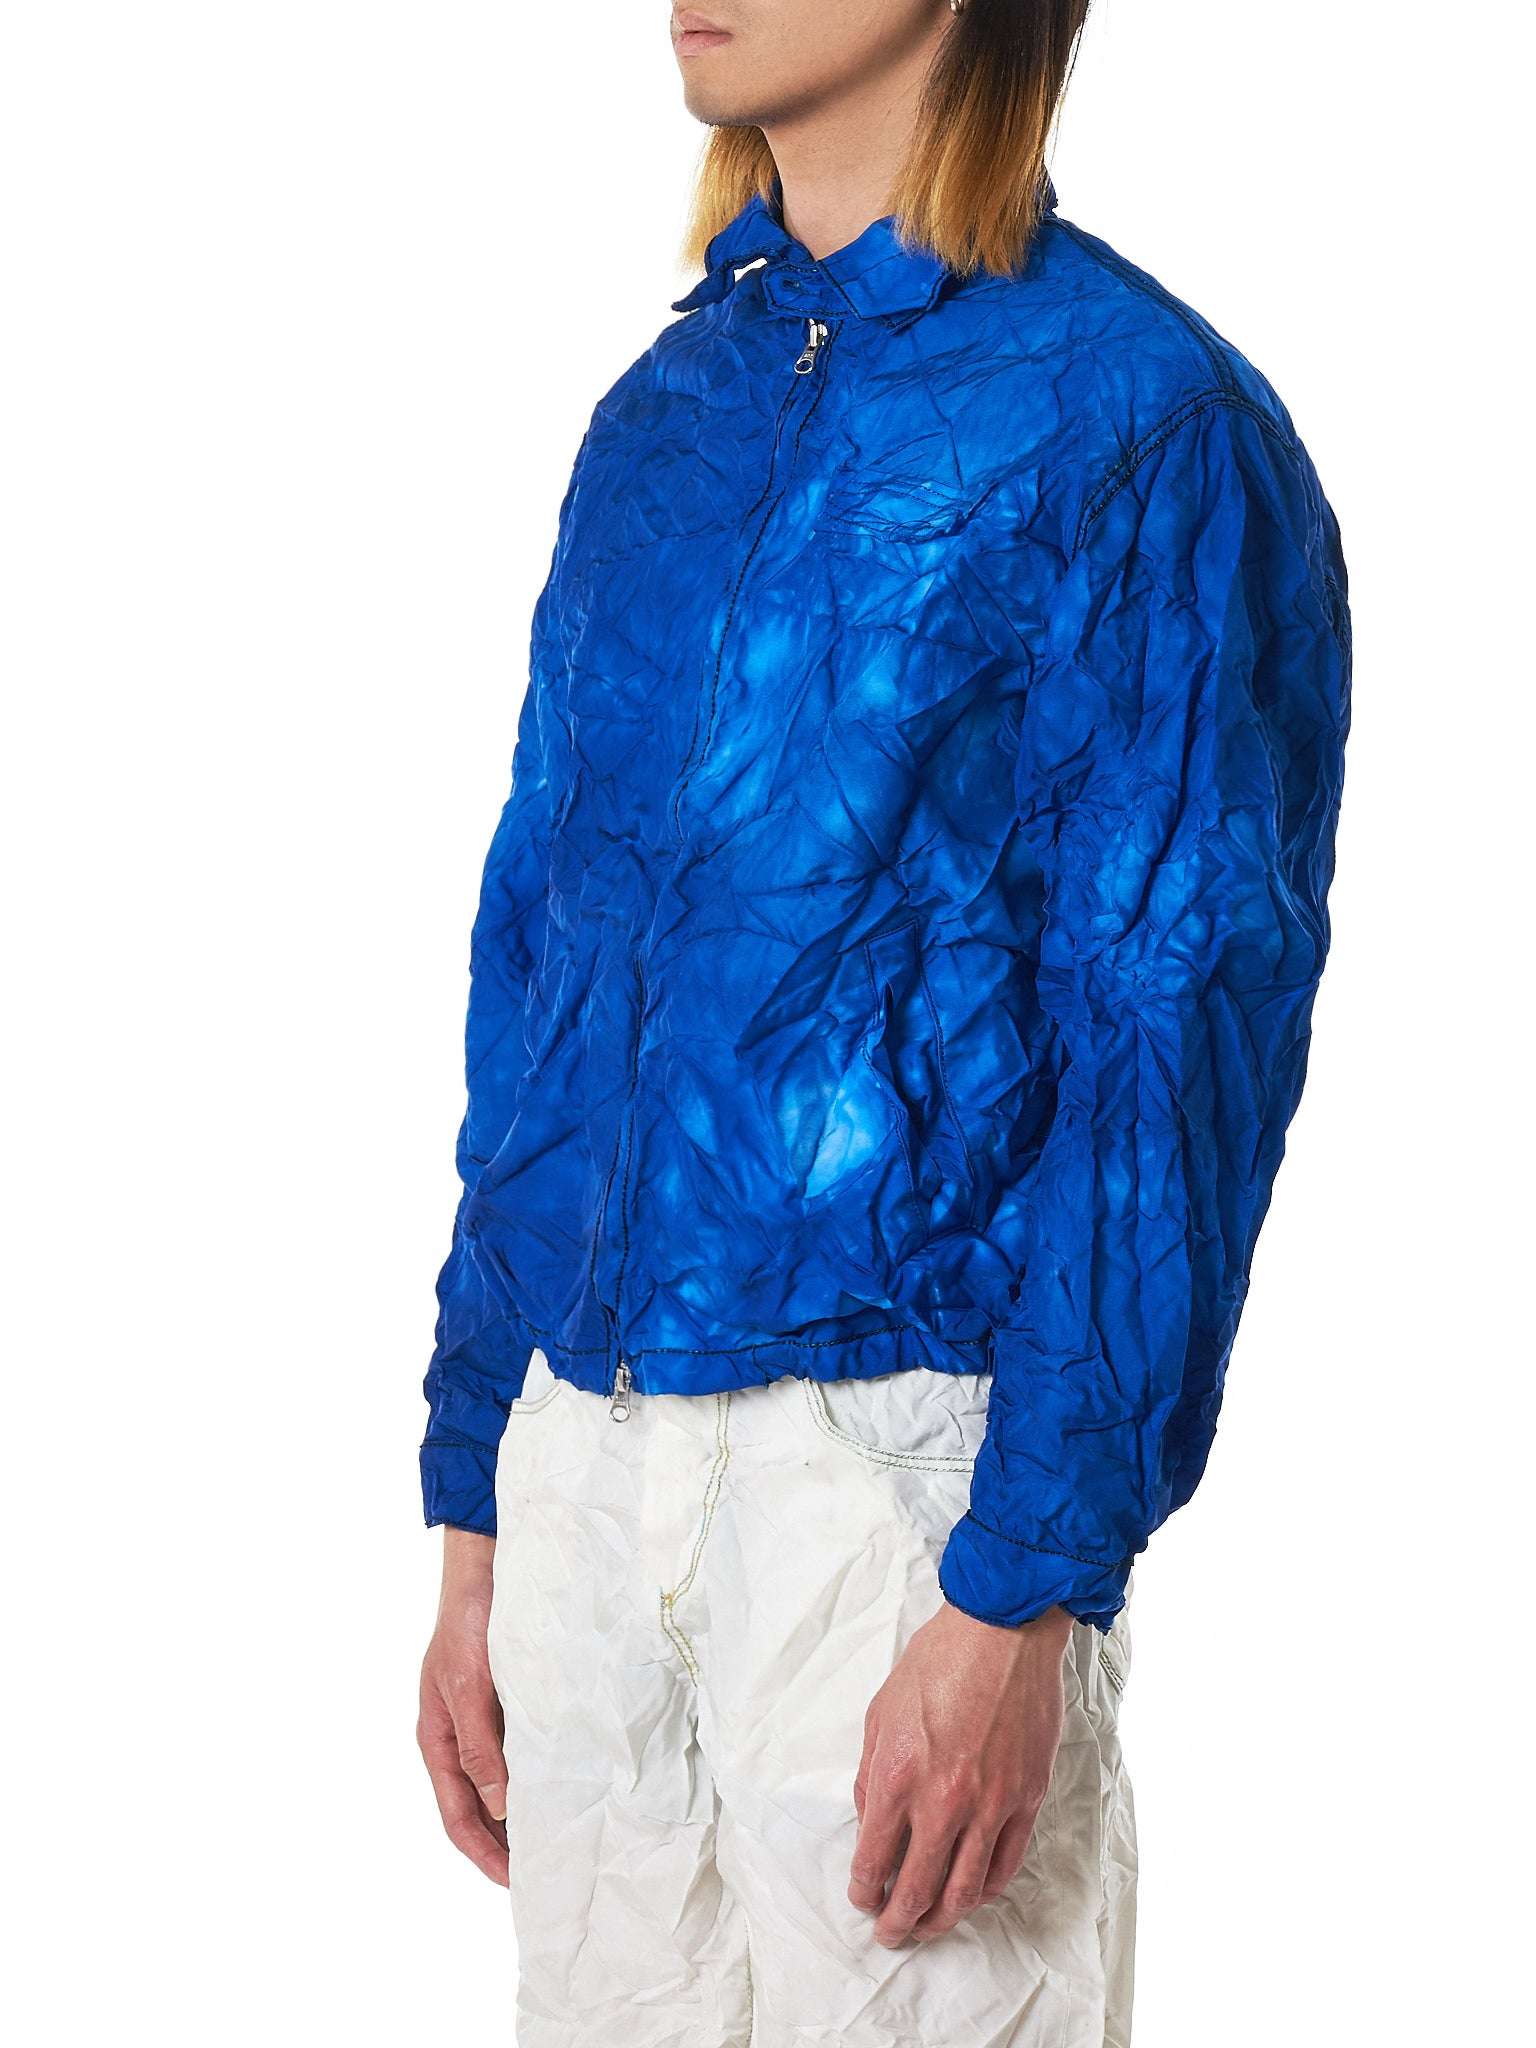 Kanghyuk Airbag Jacket - Hlorenzo Side